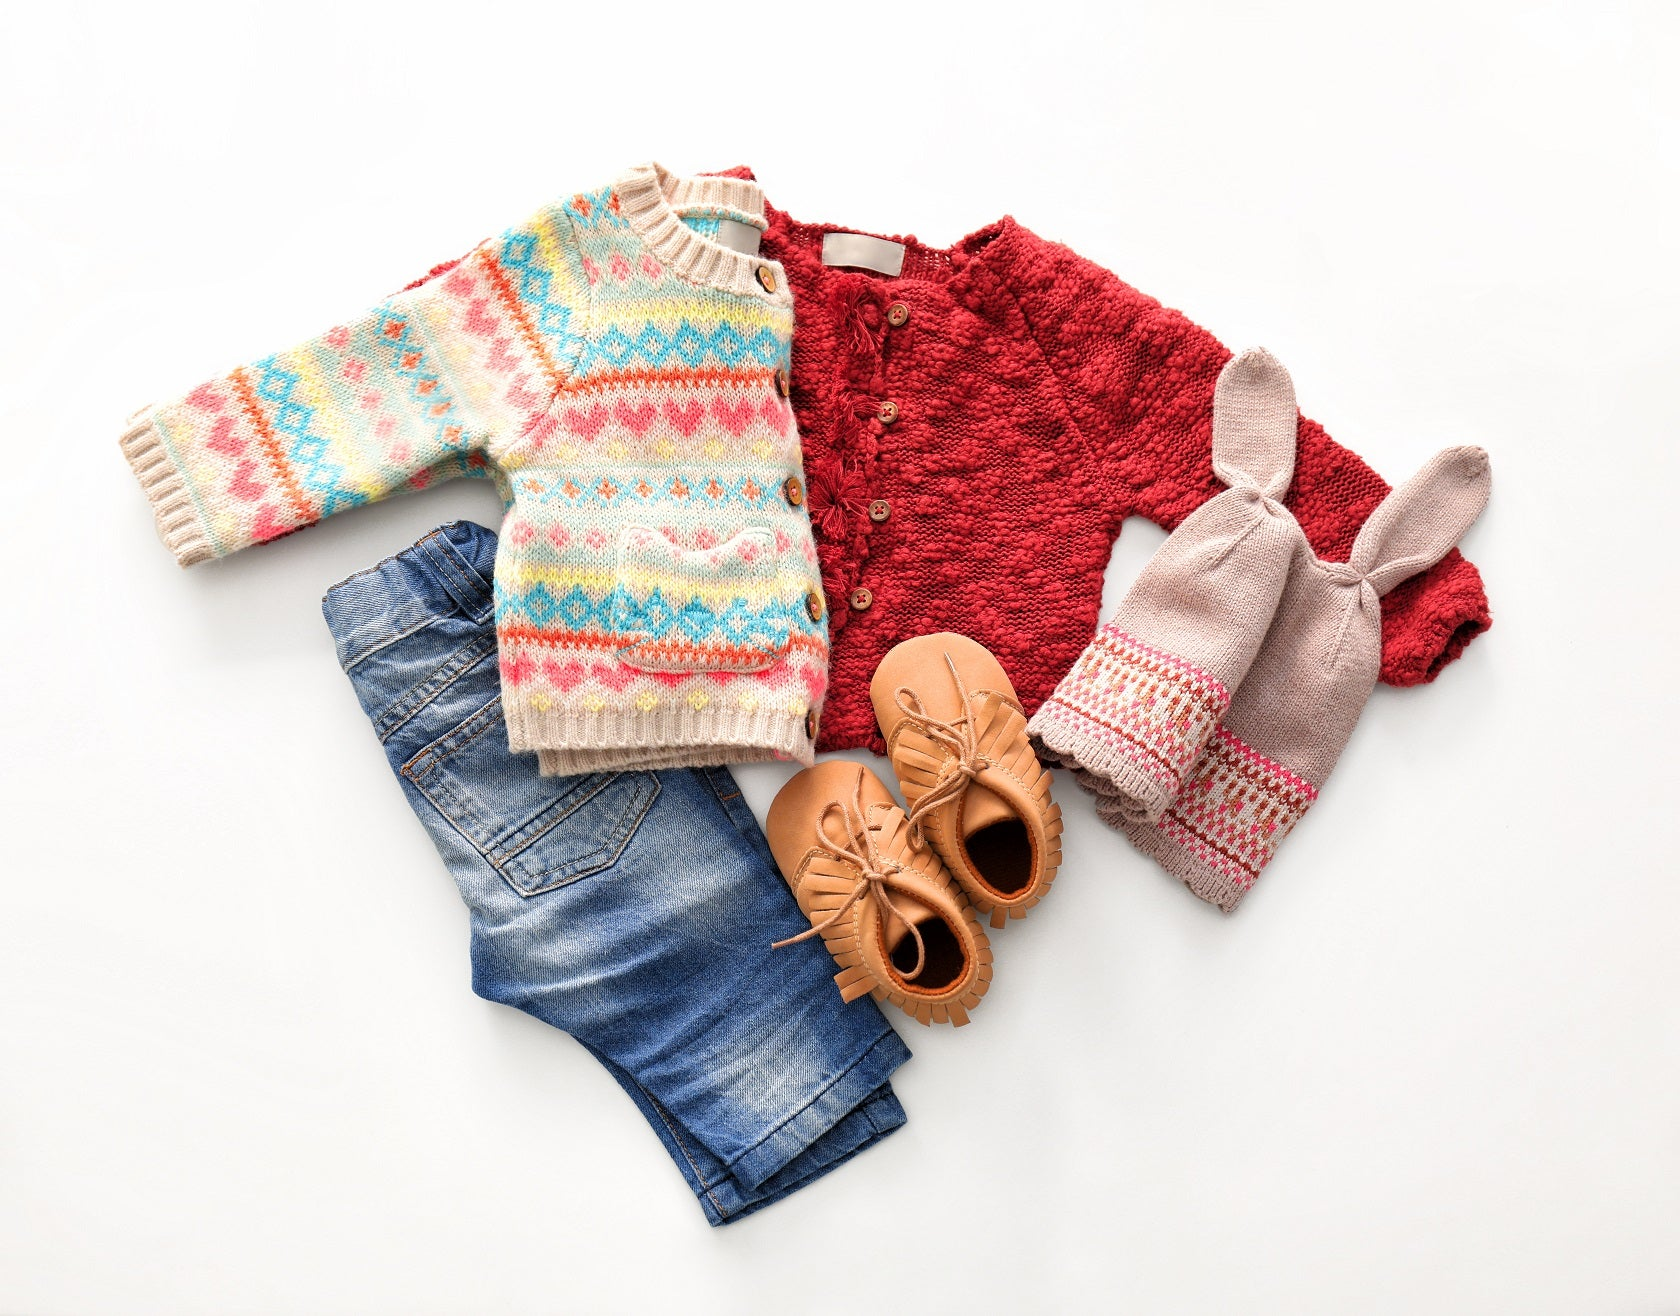 98139a5bd Second Hand Kids Clothing Stores Online